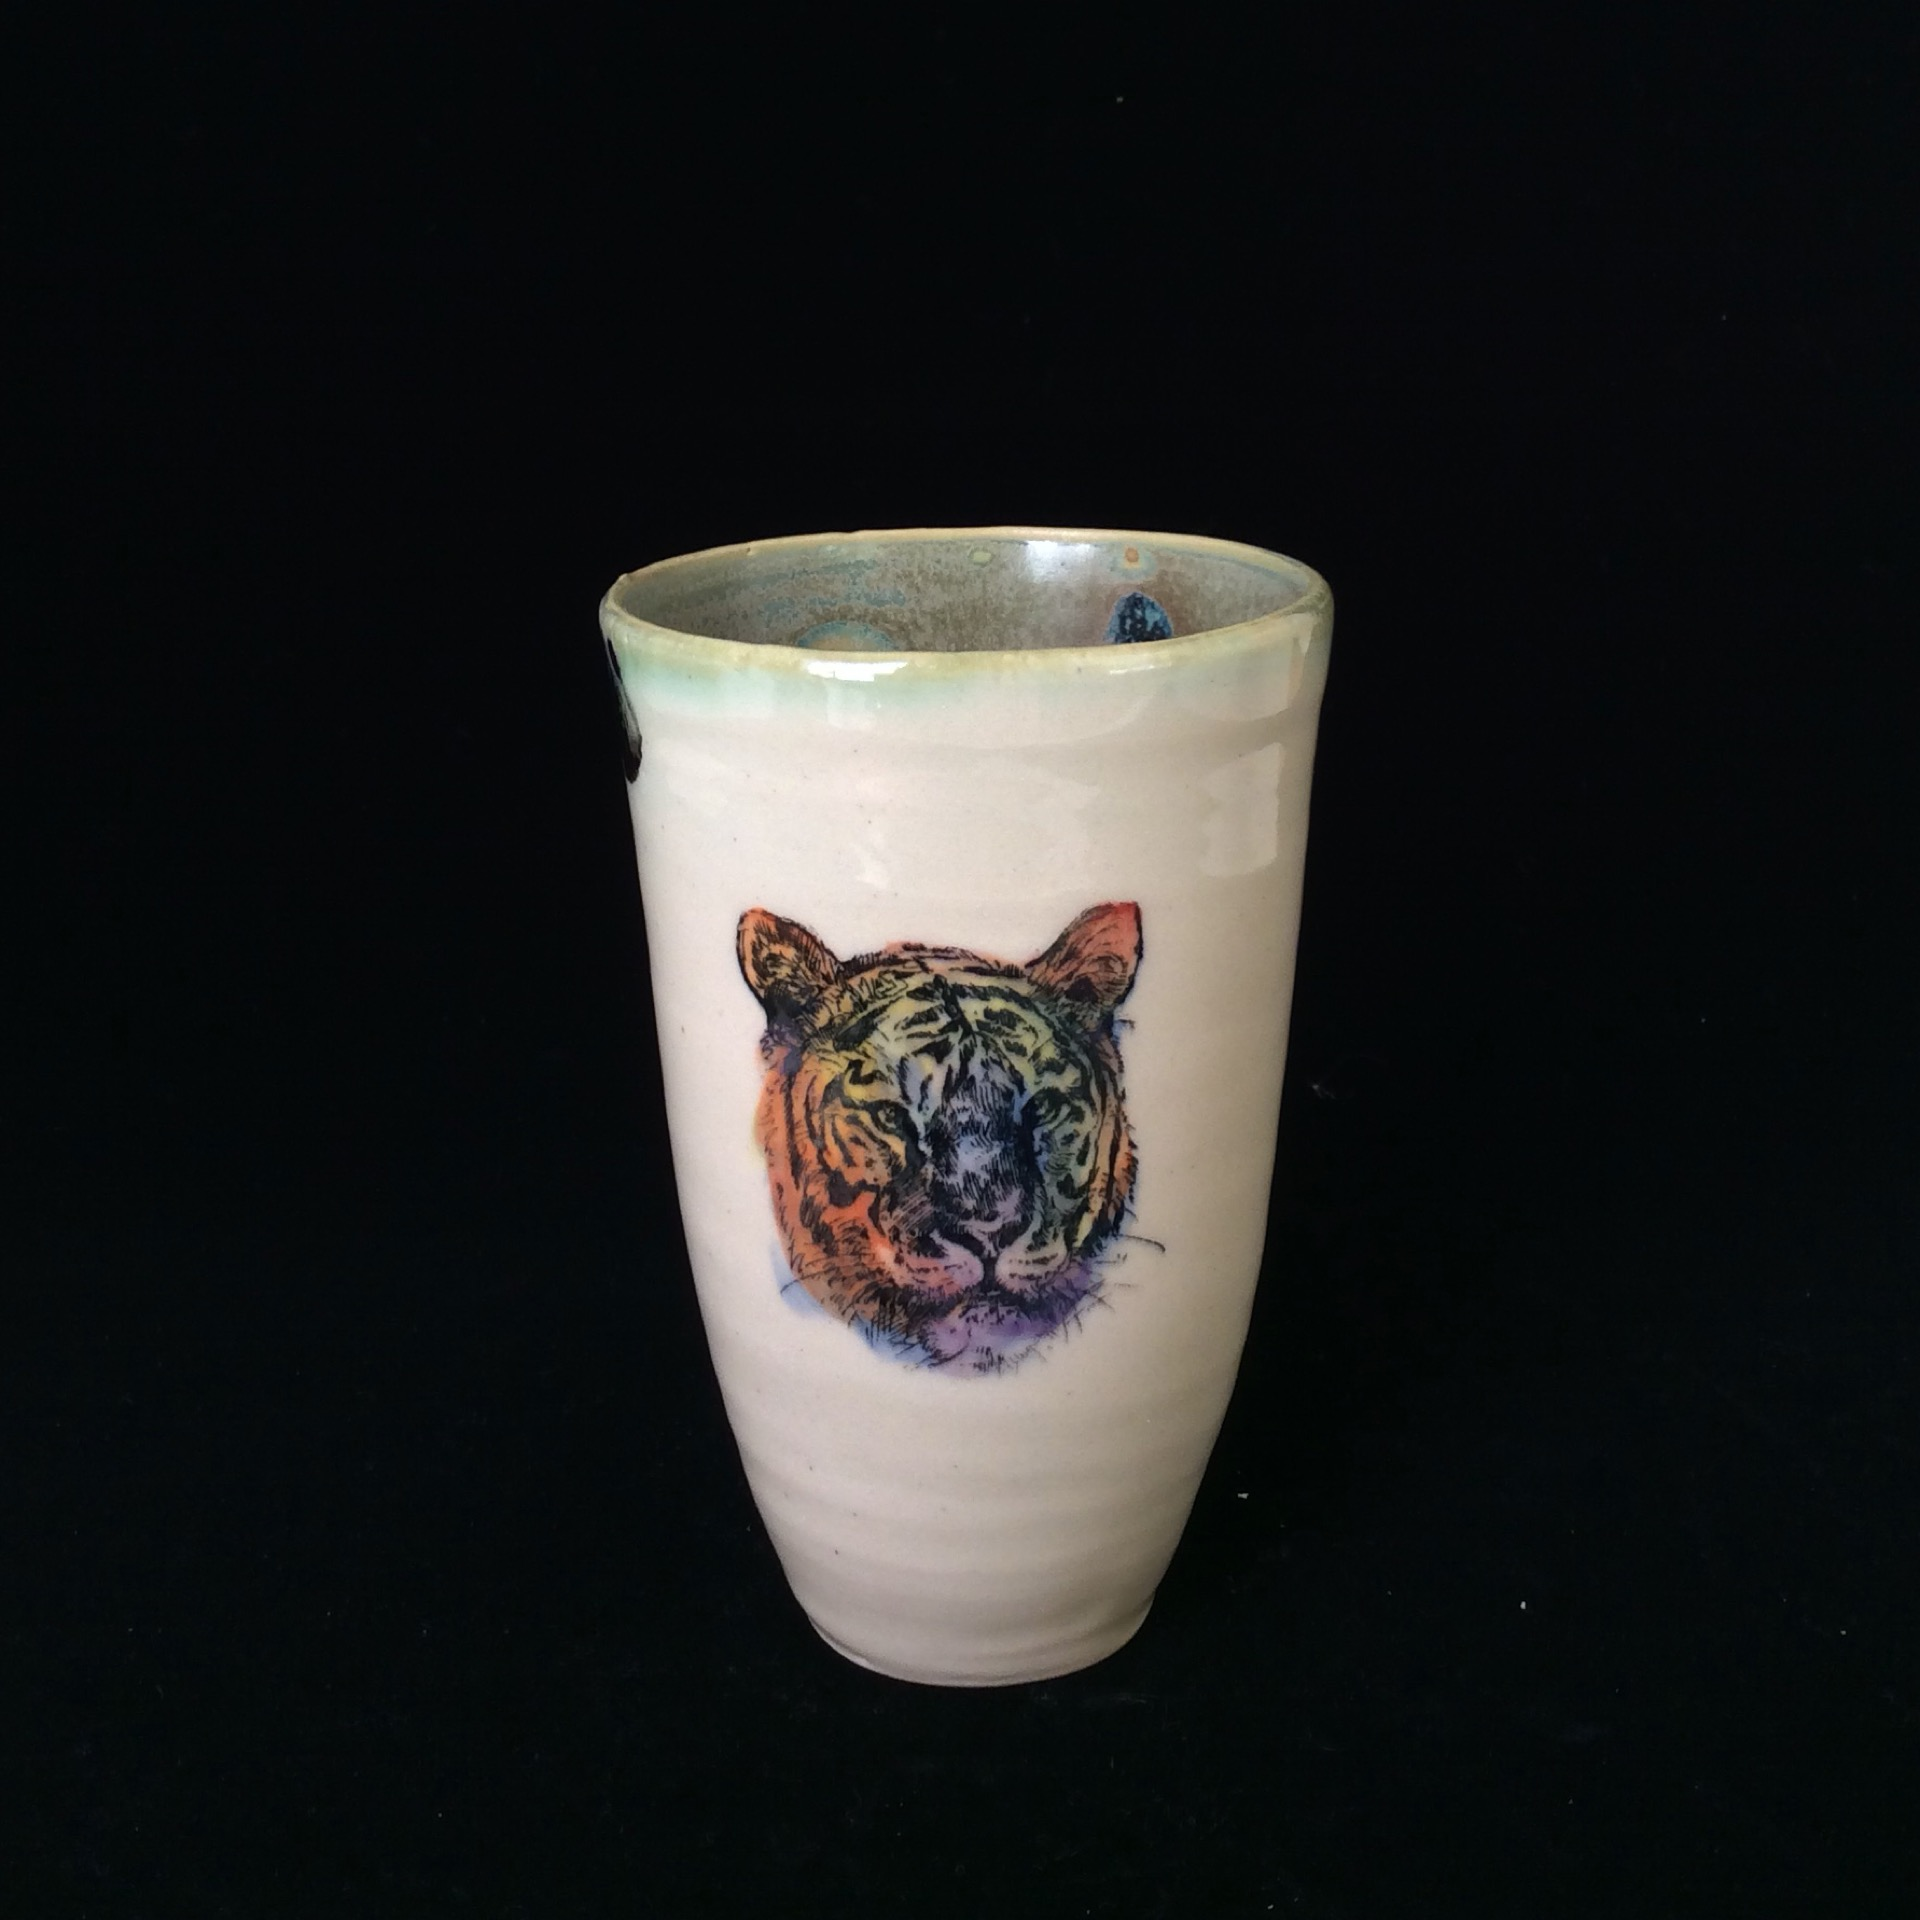 Tiger Face Cup